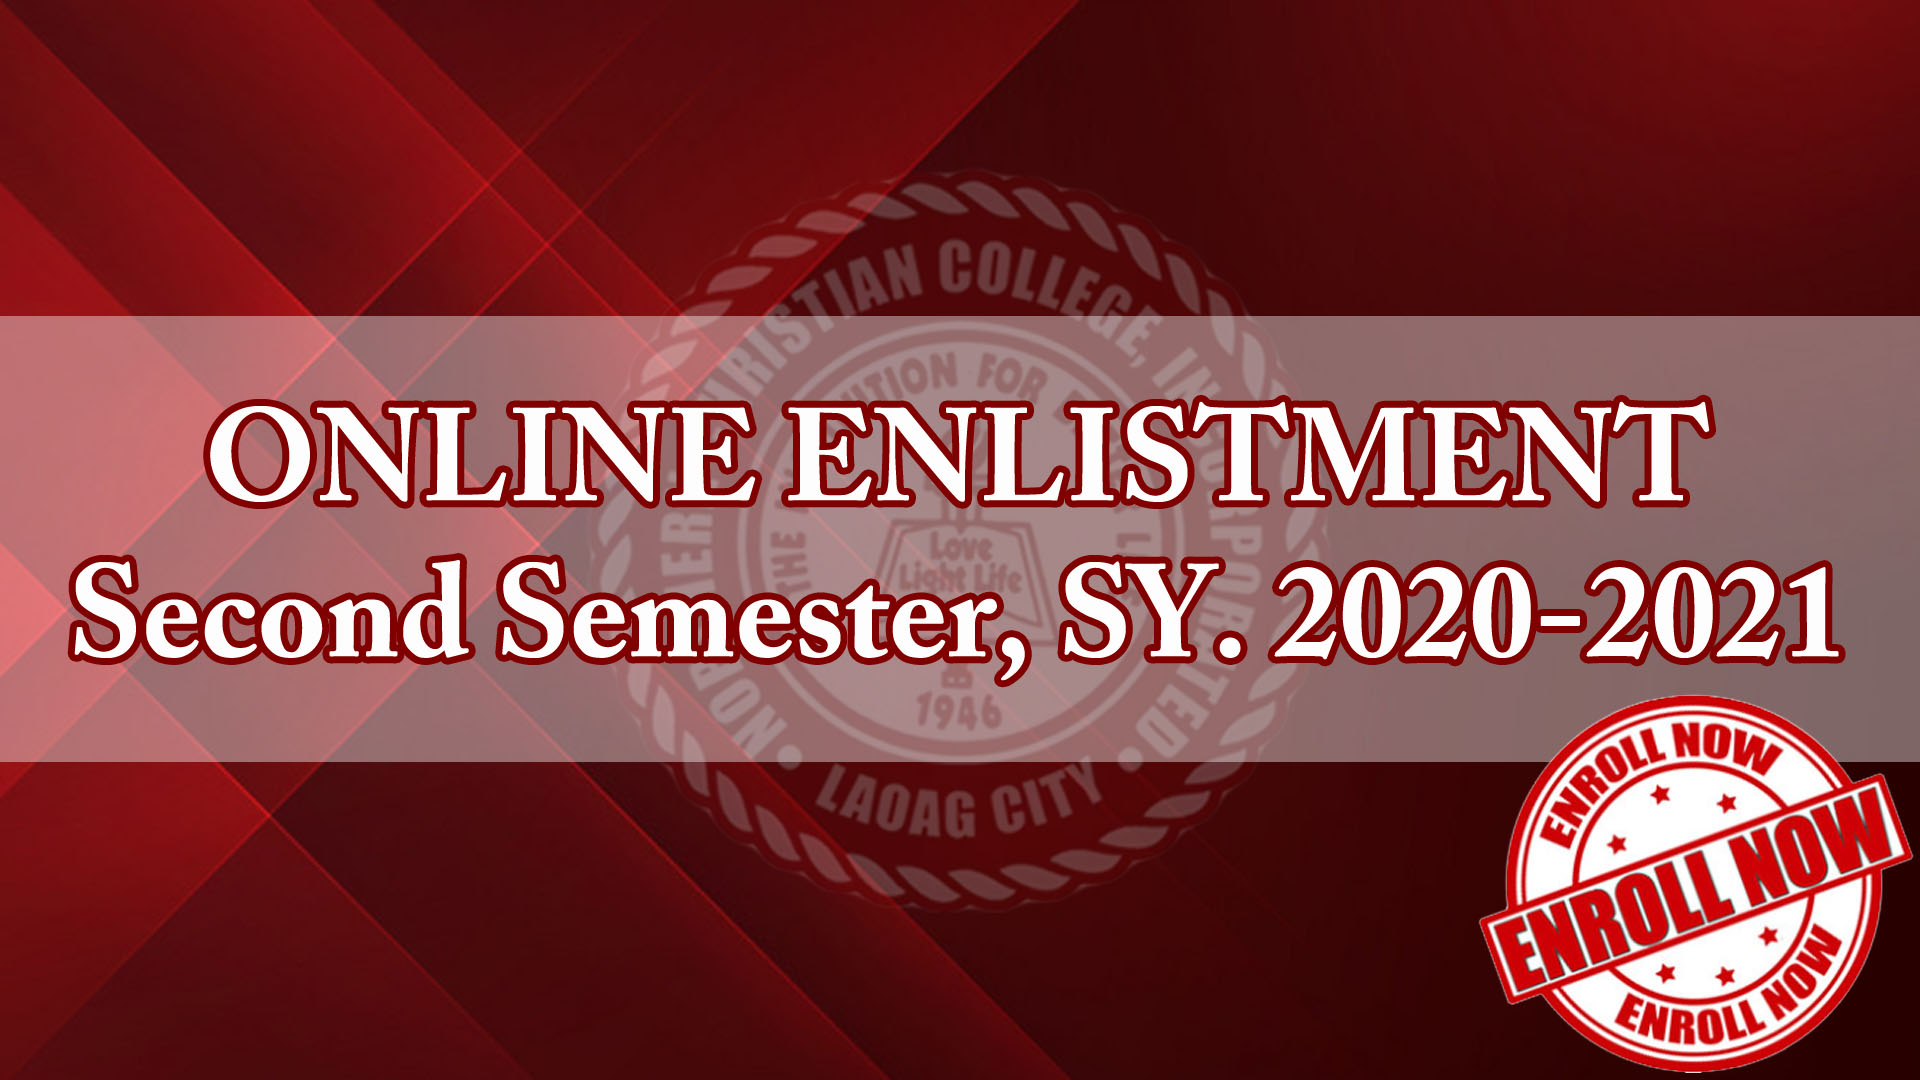 ONLINE ENLISTMENT Second Semester, SY. 2020-2021